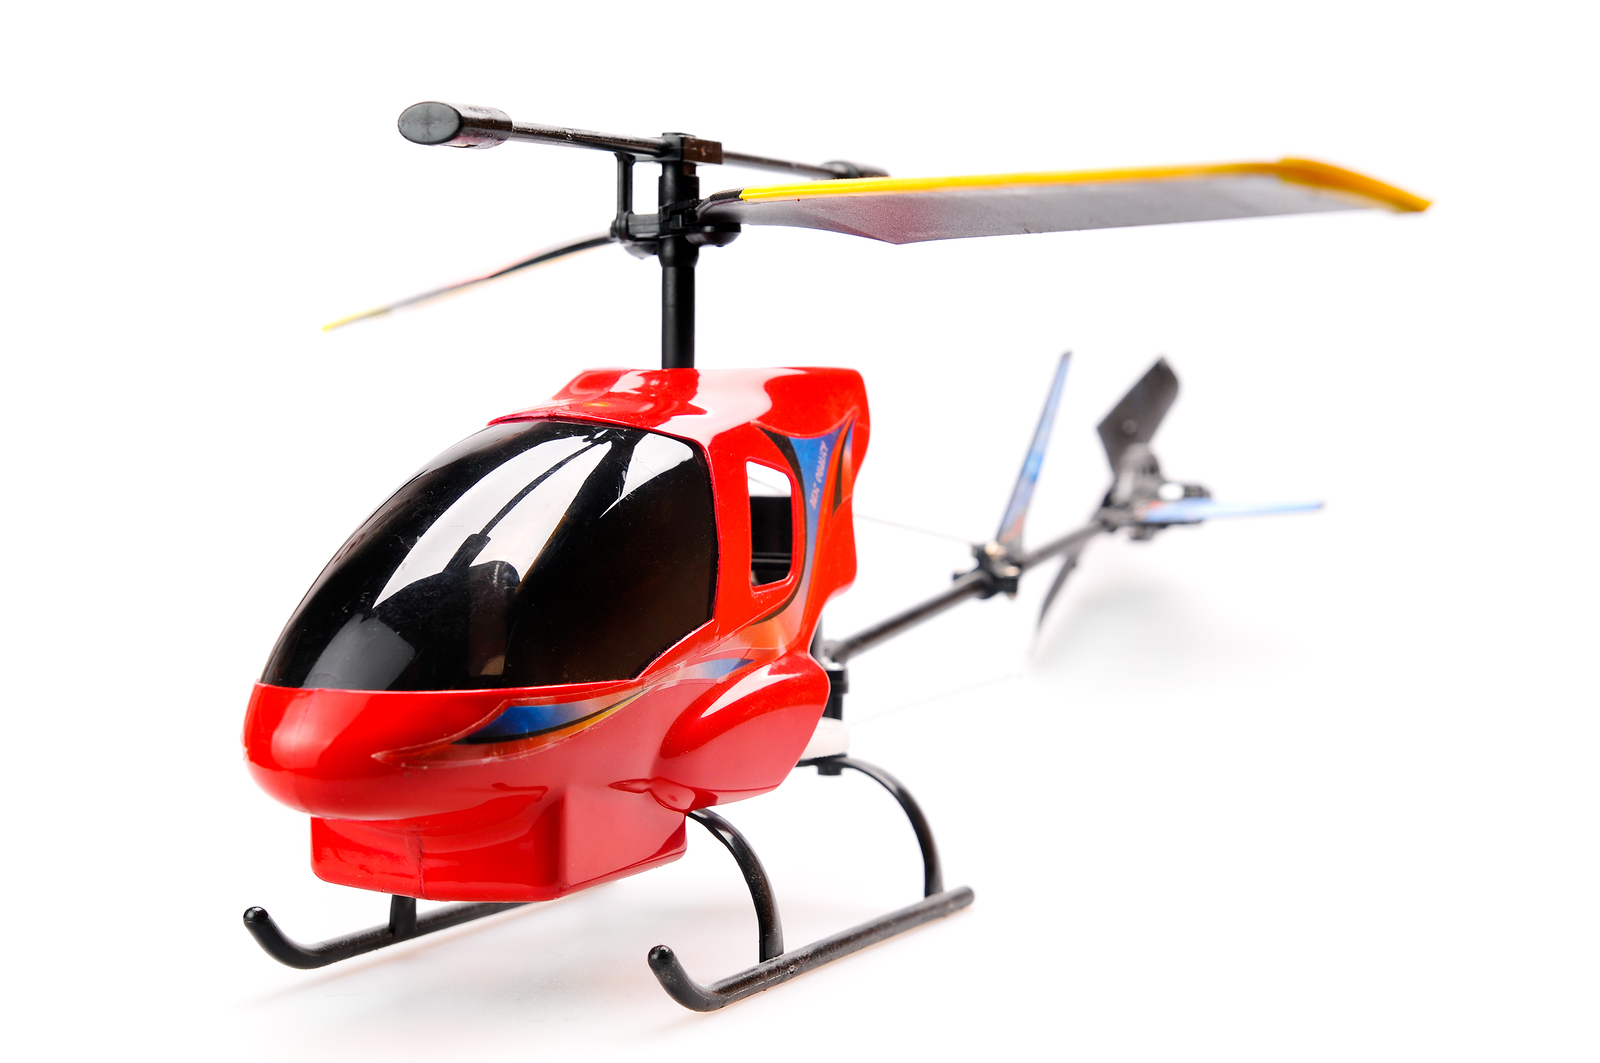 hovering helicopter toy with Three Mistakes Helicopter Parents Make That Prevent Their Children From Growing Up on The 2012 best rc helicopters buit In gyro furthermore Navy Cooks Bake 366 Pound Cake Replica Of Uss Truman Aircraft Carrier furthermore Walkera Master Cp Nice 3d Helicopter Six Axis Gyro Beginners likewise 2016 Jjrc Professional Rc Quadcopter H26d 3 0mp Wide Angle Camera 2 4g 4ch 6 Axis Rtf Aereo Rc Drones Hd Airplane Toy in addition Hover Baymax Toys.